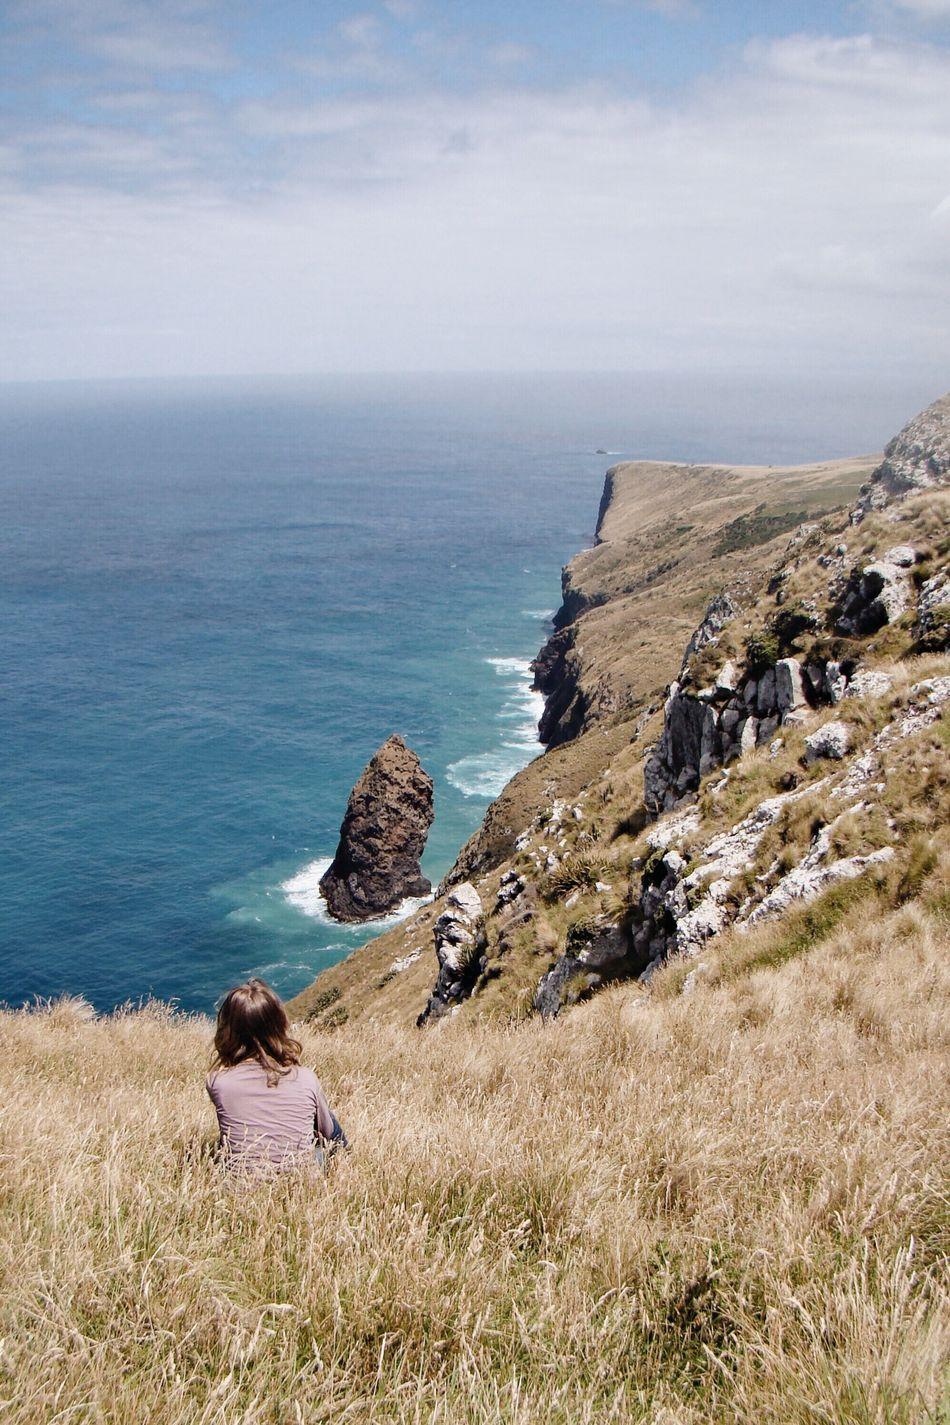 Newzealand Newzealandoutdoors Explorenewzealand Outdoors Sea Ocean Seascape Horizon Over Water Tranquil Scene Scenics Nature Otago Explore Cliffs Coastline Coastal